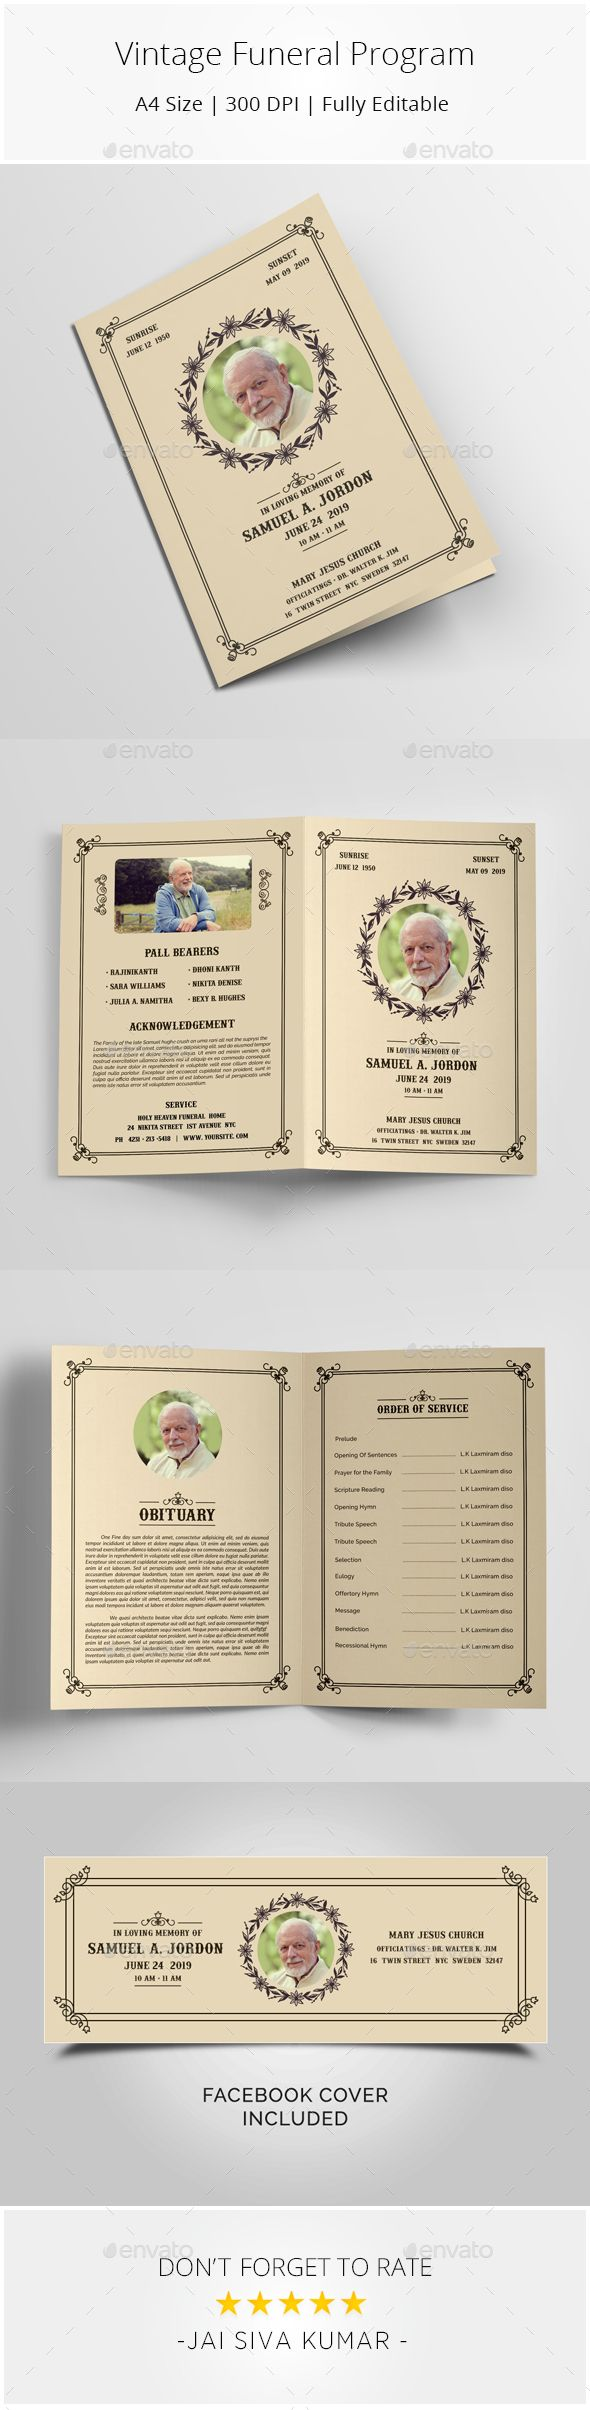 Vintage Funeral Program Template #funeral service program #church bulletin  • Download here → https://graphicriver.net/item/vintage-funeral-program-template/21220099?ref=pxcr